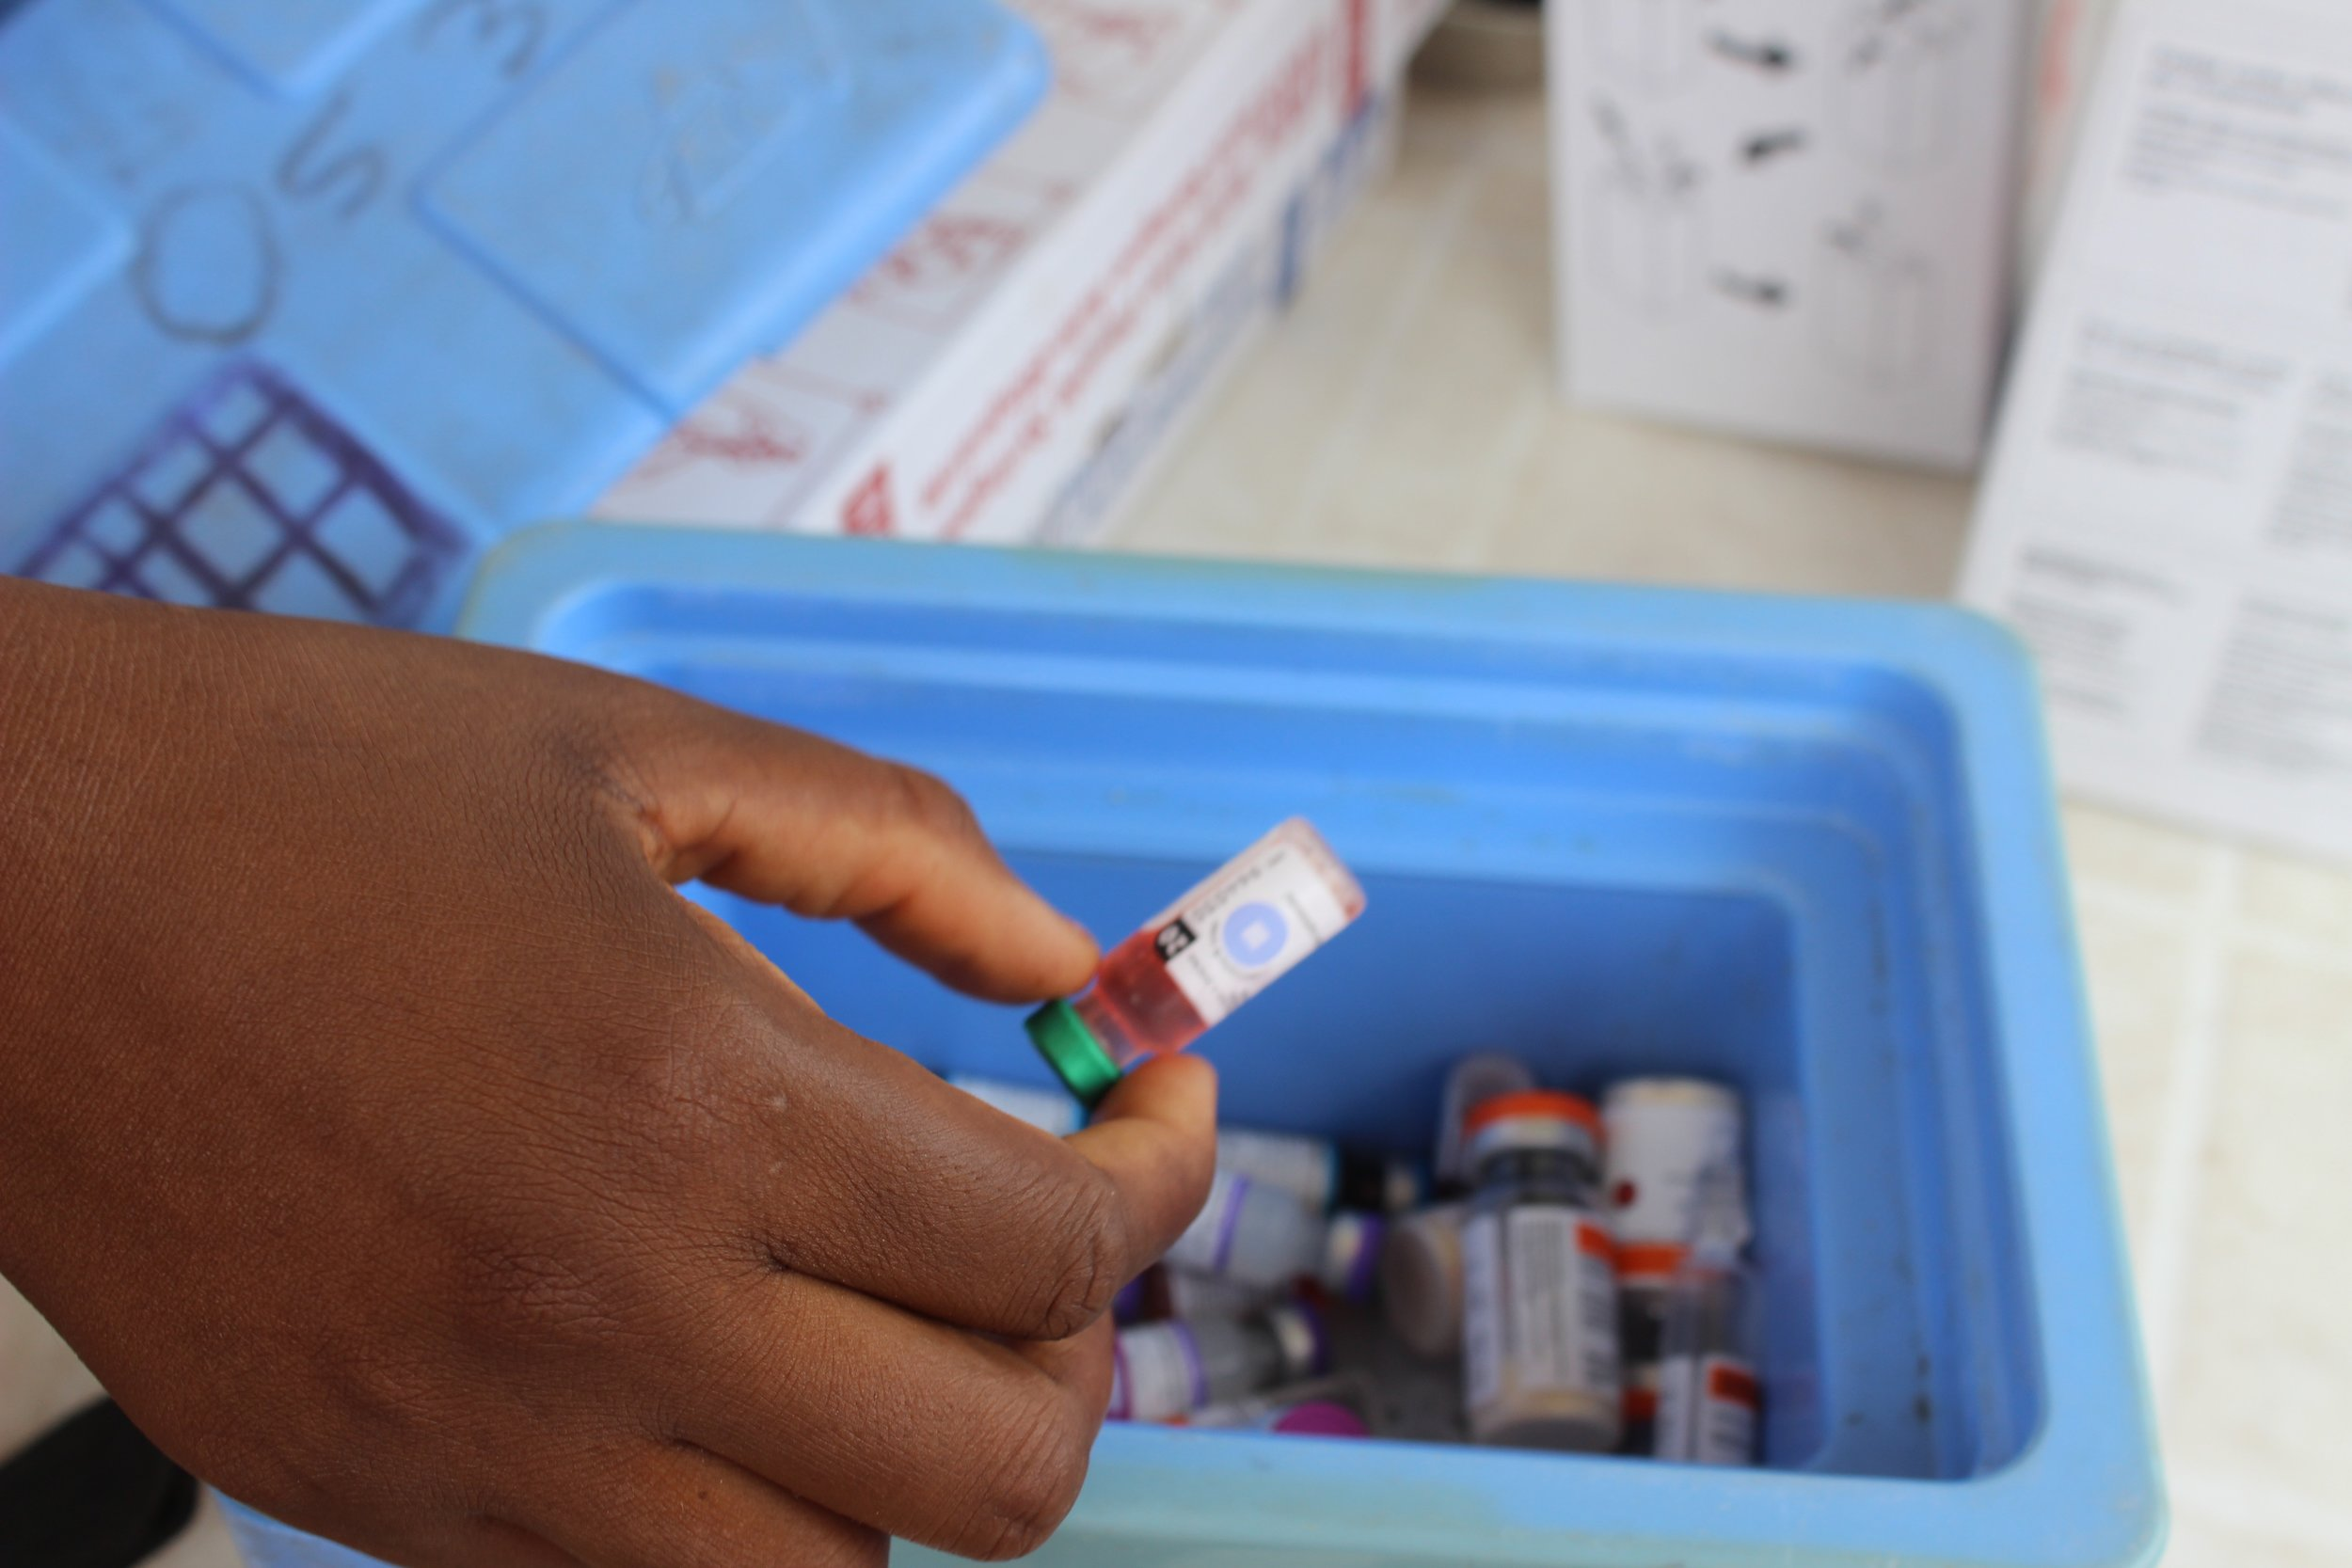 Vaccines are some of the most essential health commodities